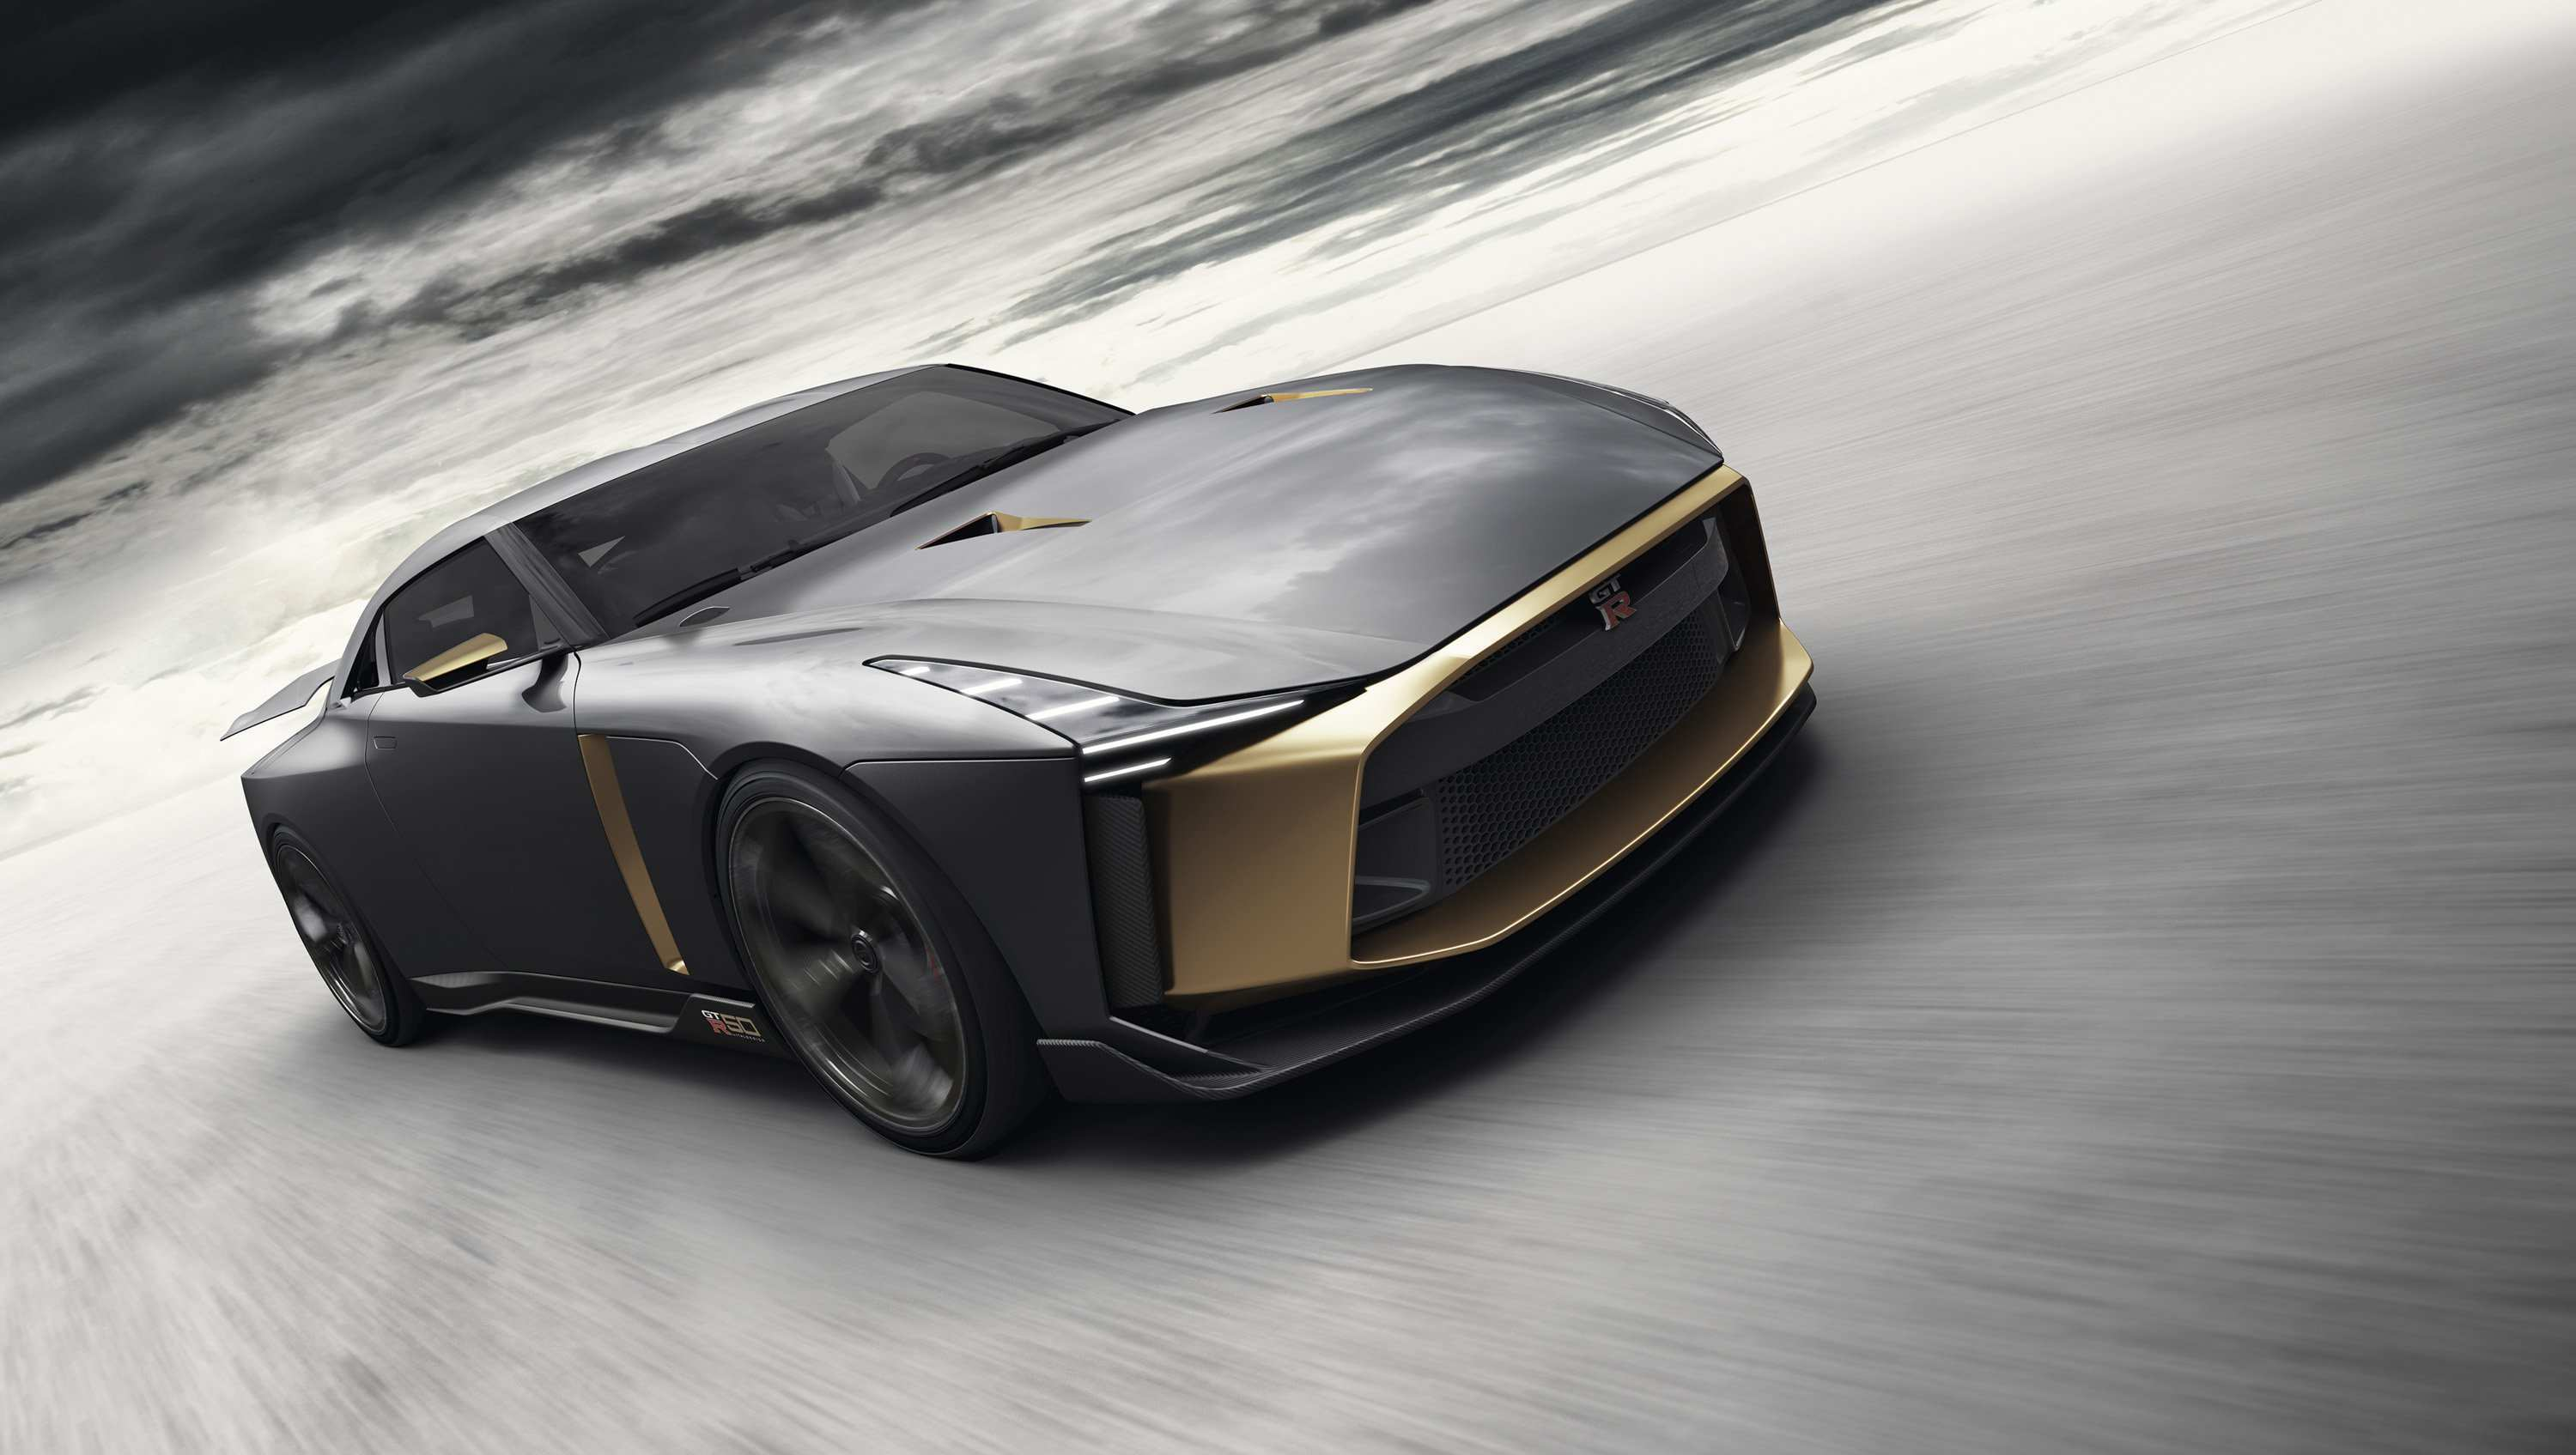 37 A Nissan Gtr 2020 Release Date And Concept